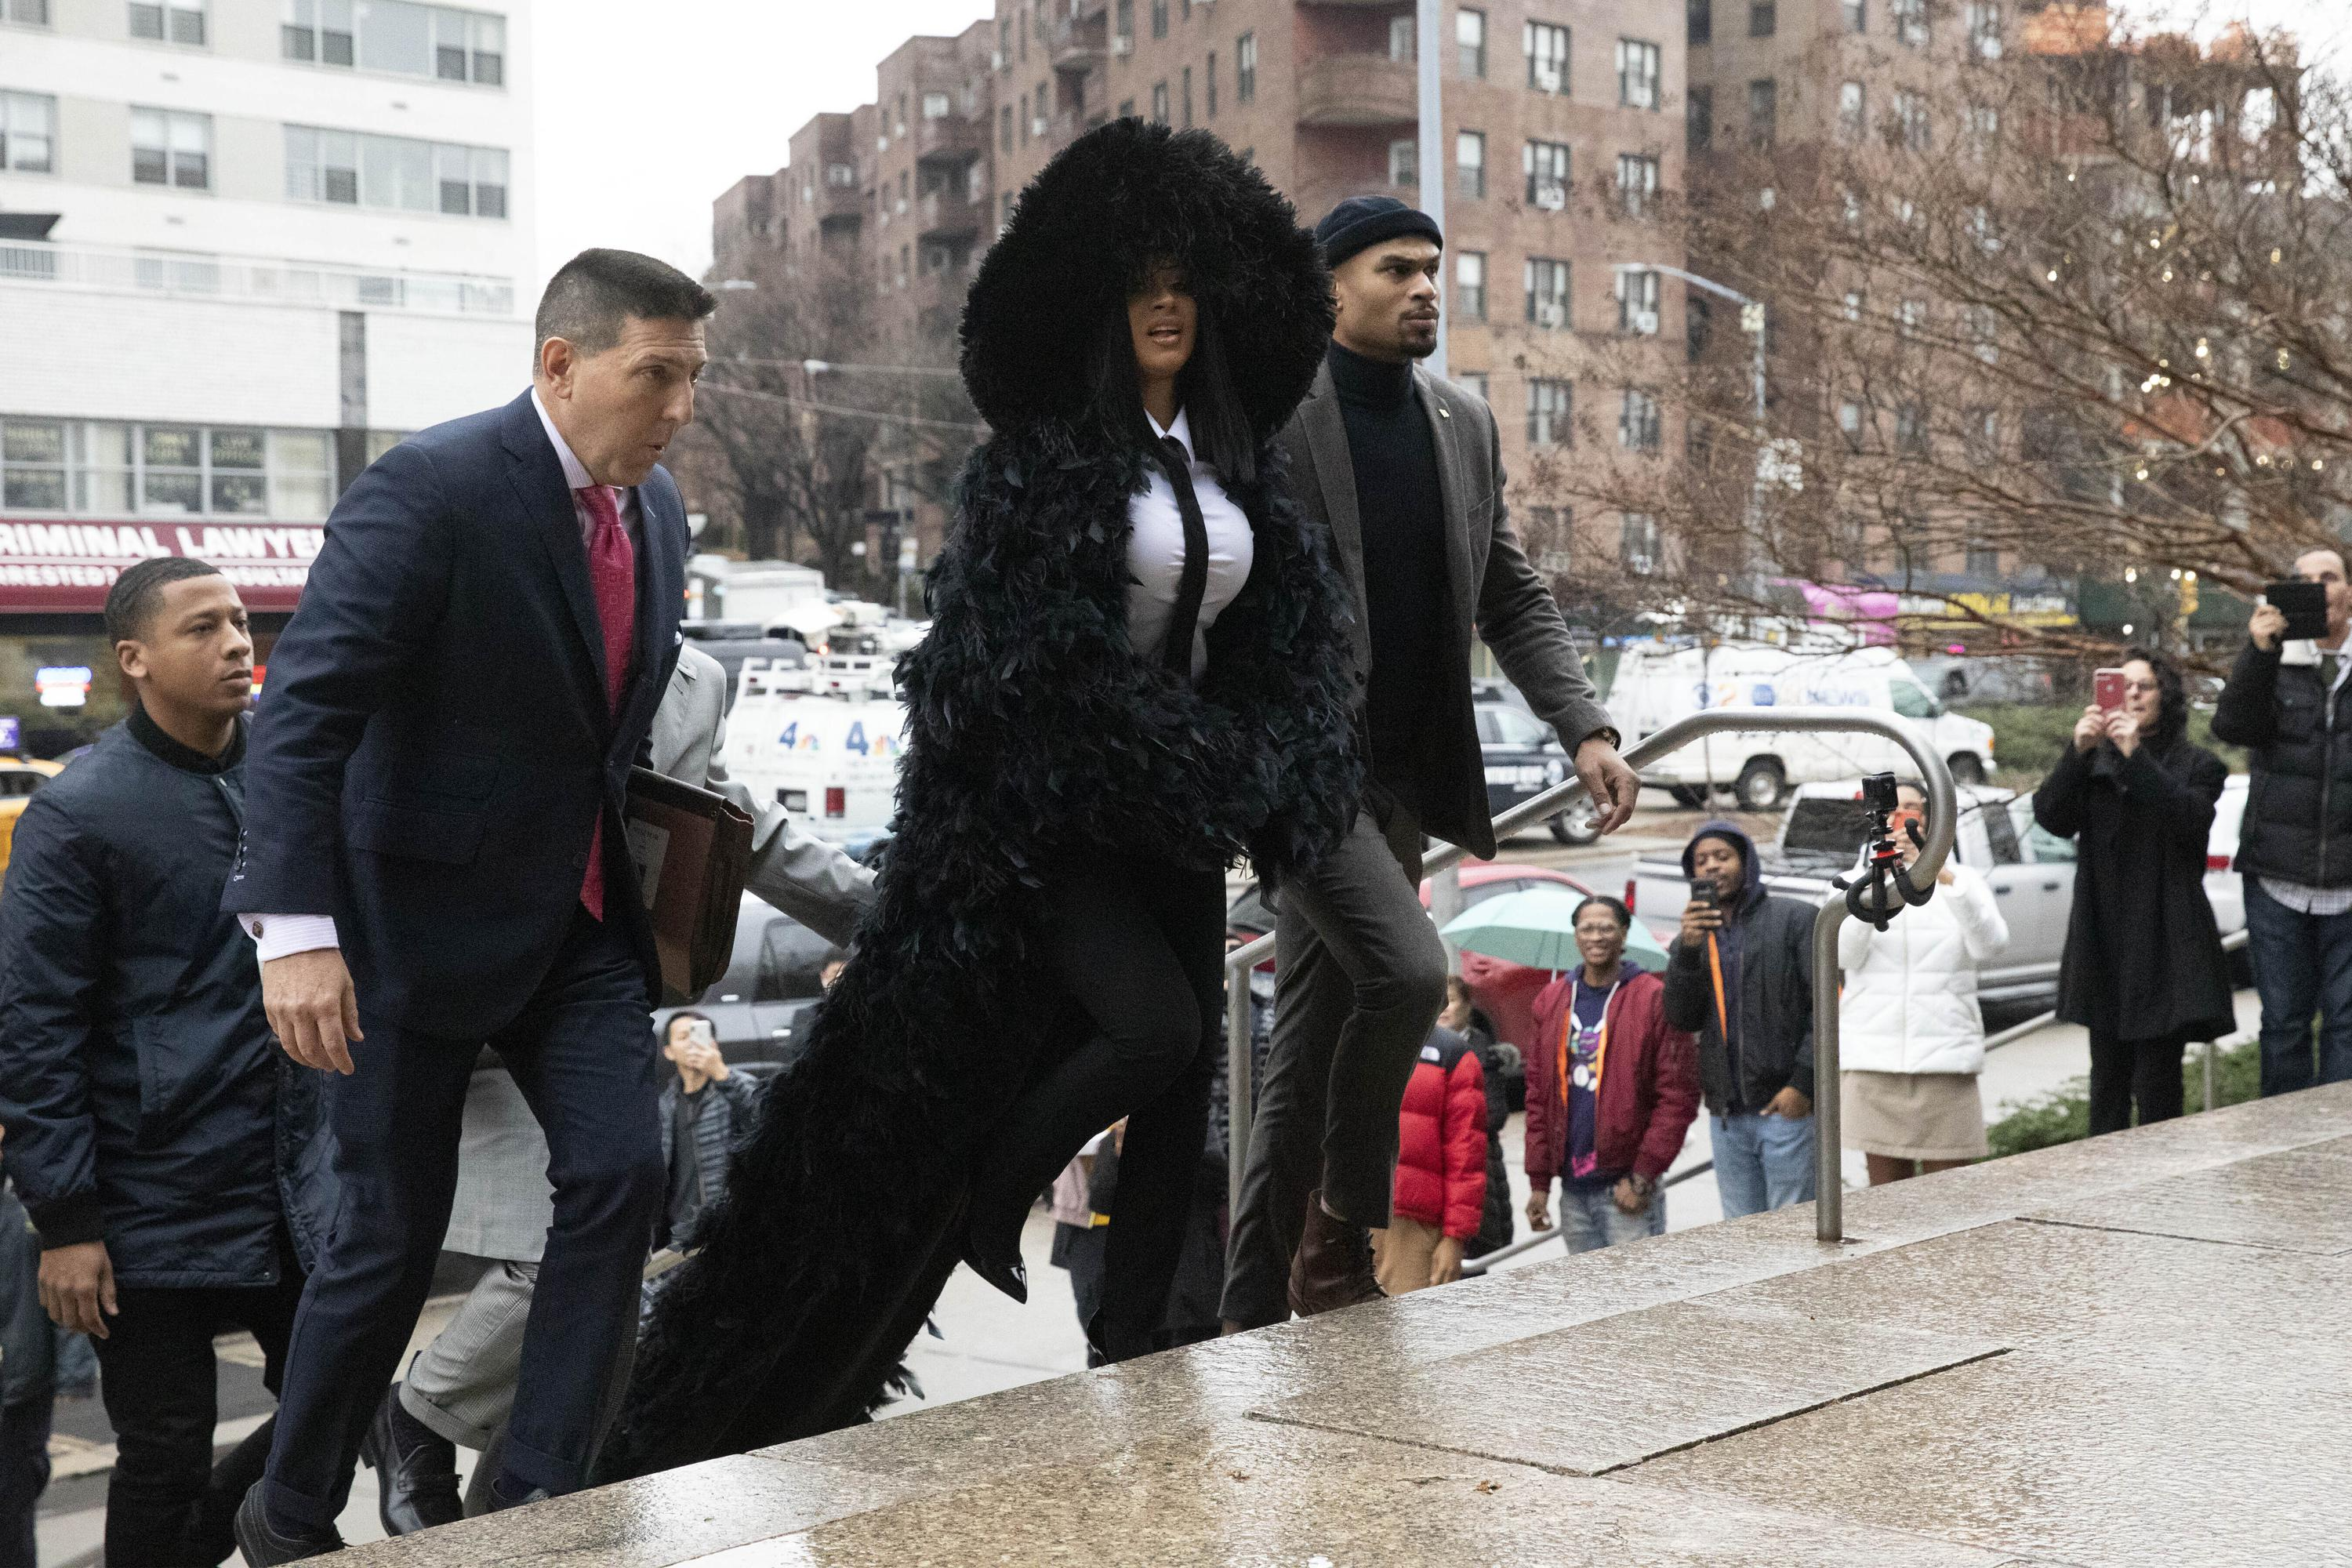 Cardi B shows up at court in style for strip club fight case